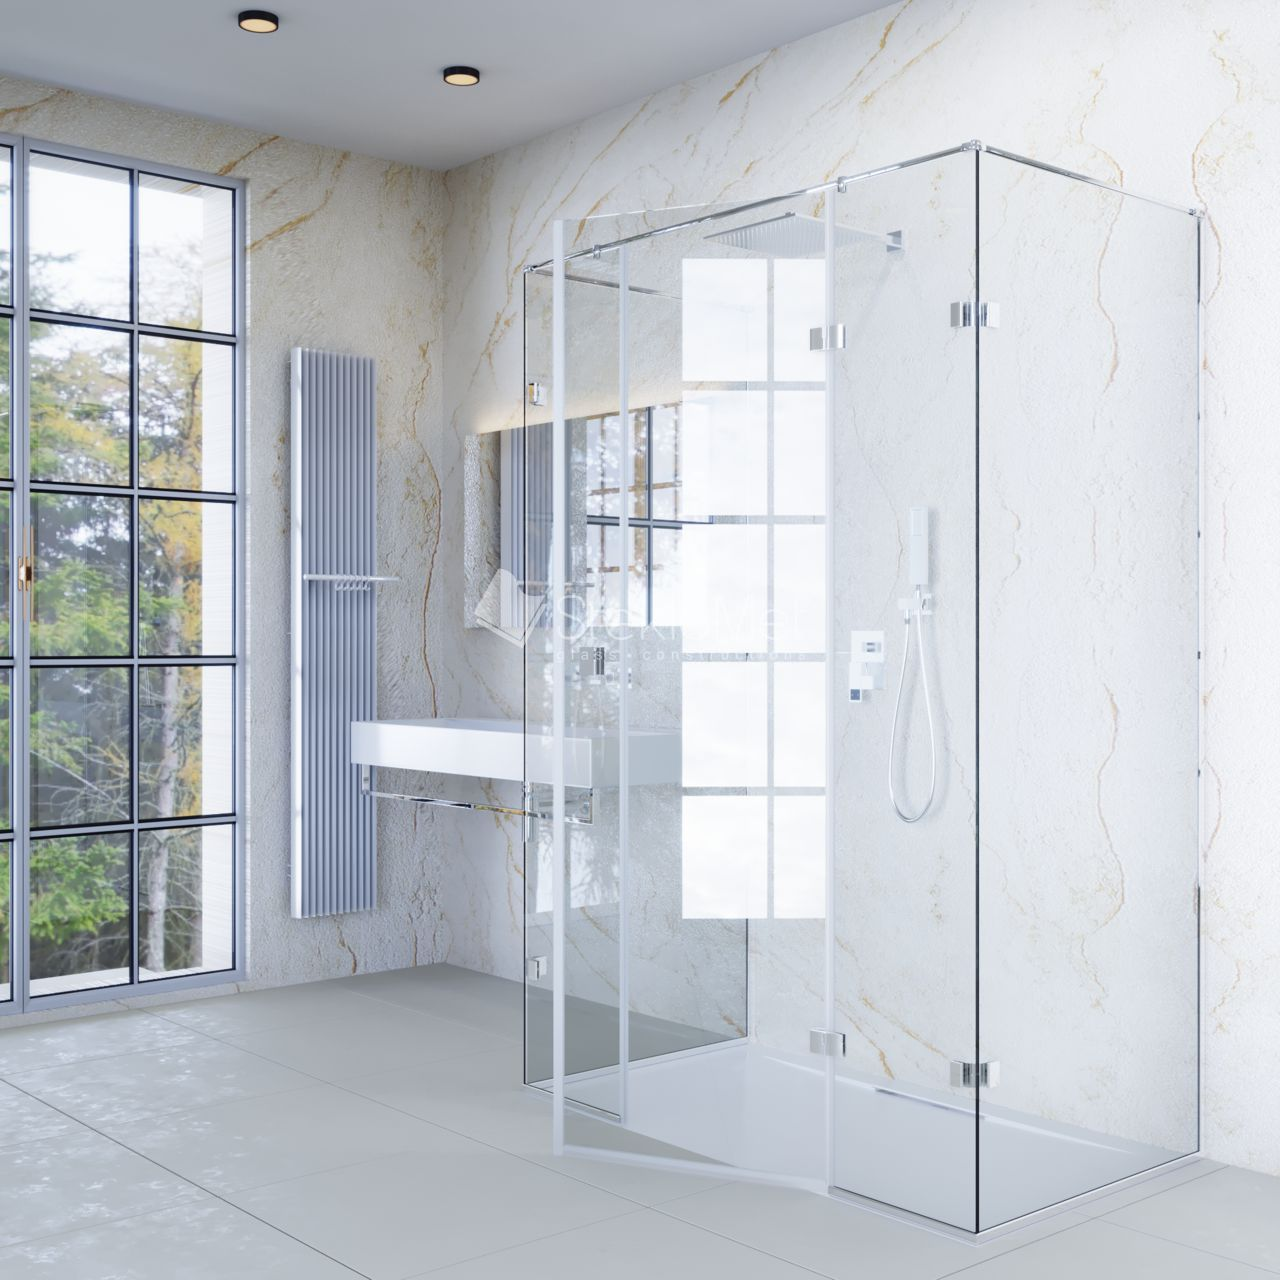 Душевая кабина StekloMet серия Shower Mini SM-090503.04R